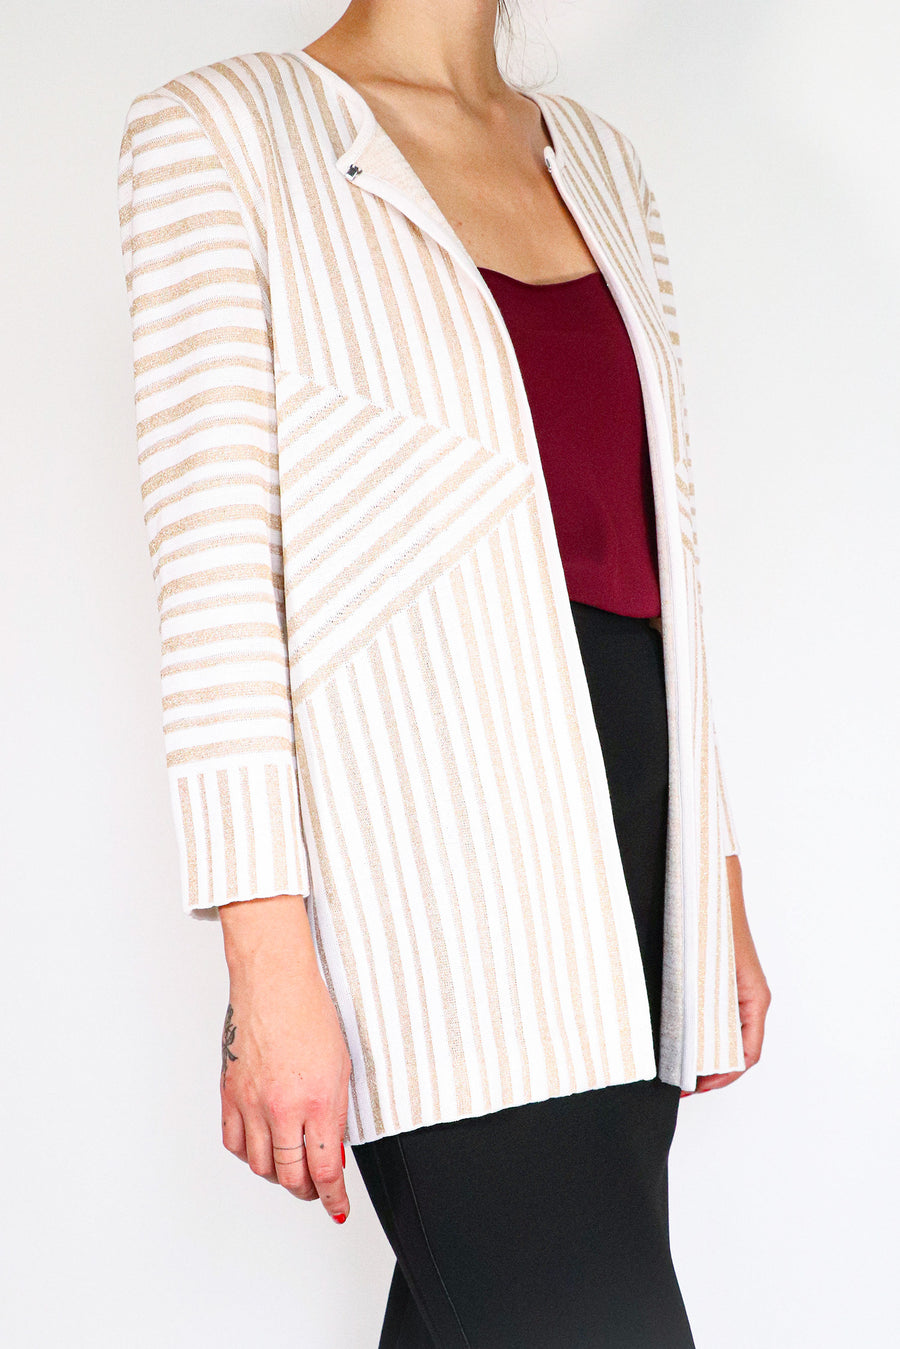 Misook - Sparkle Stripe Jacket - M